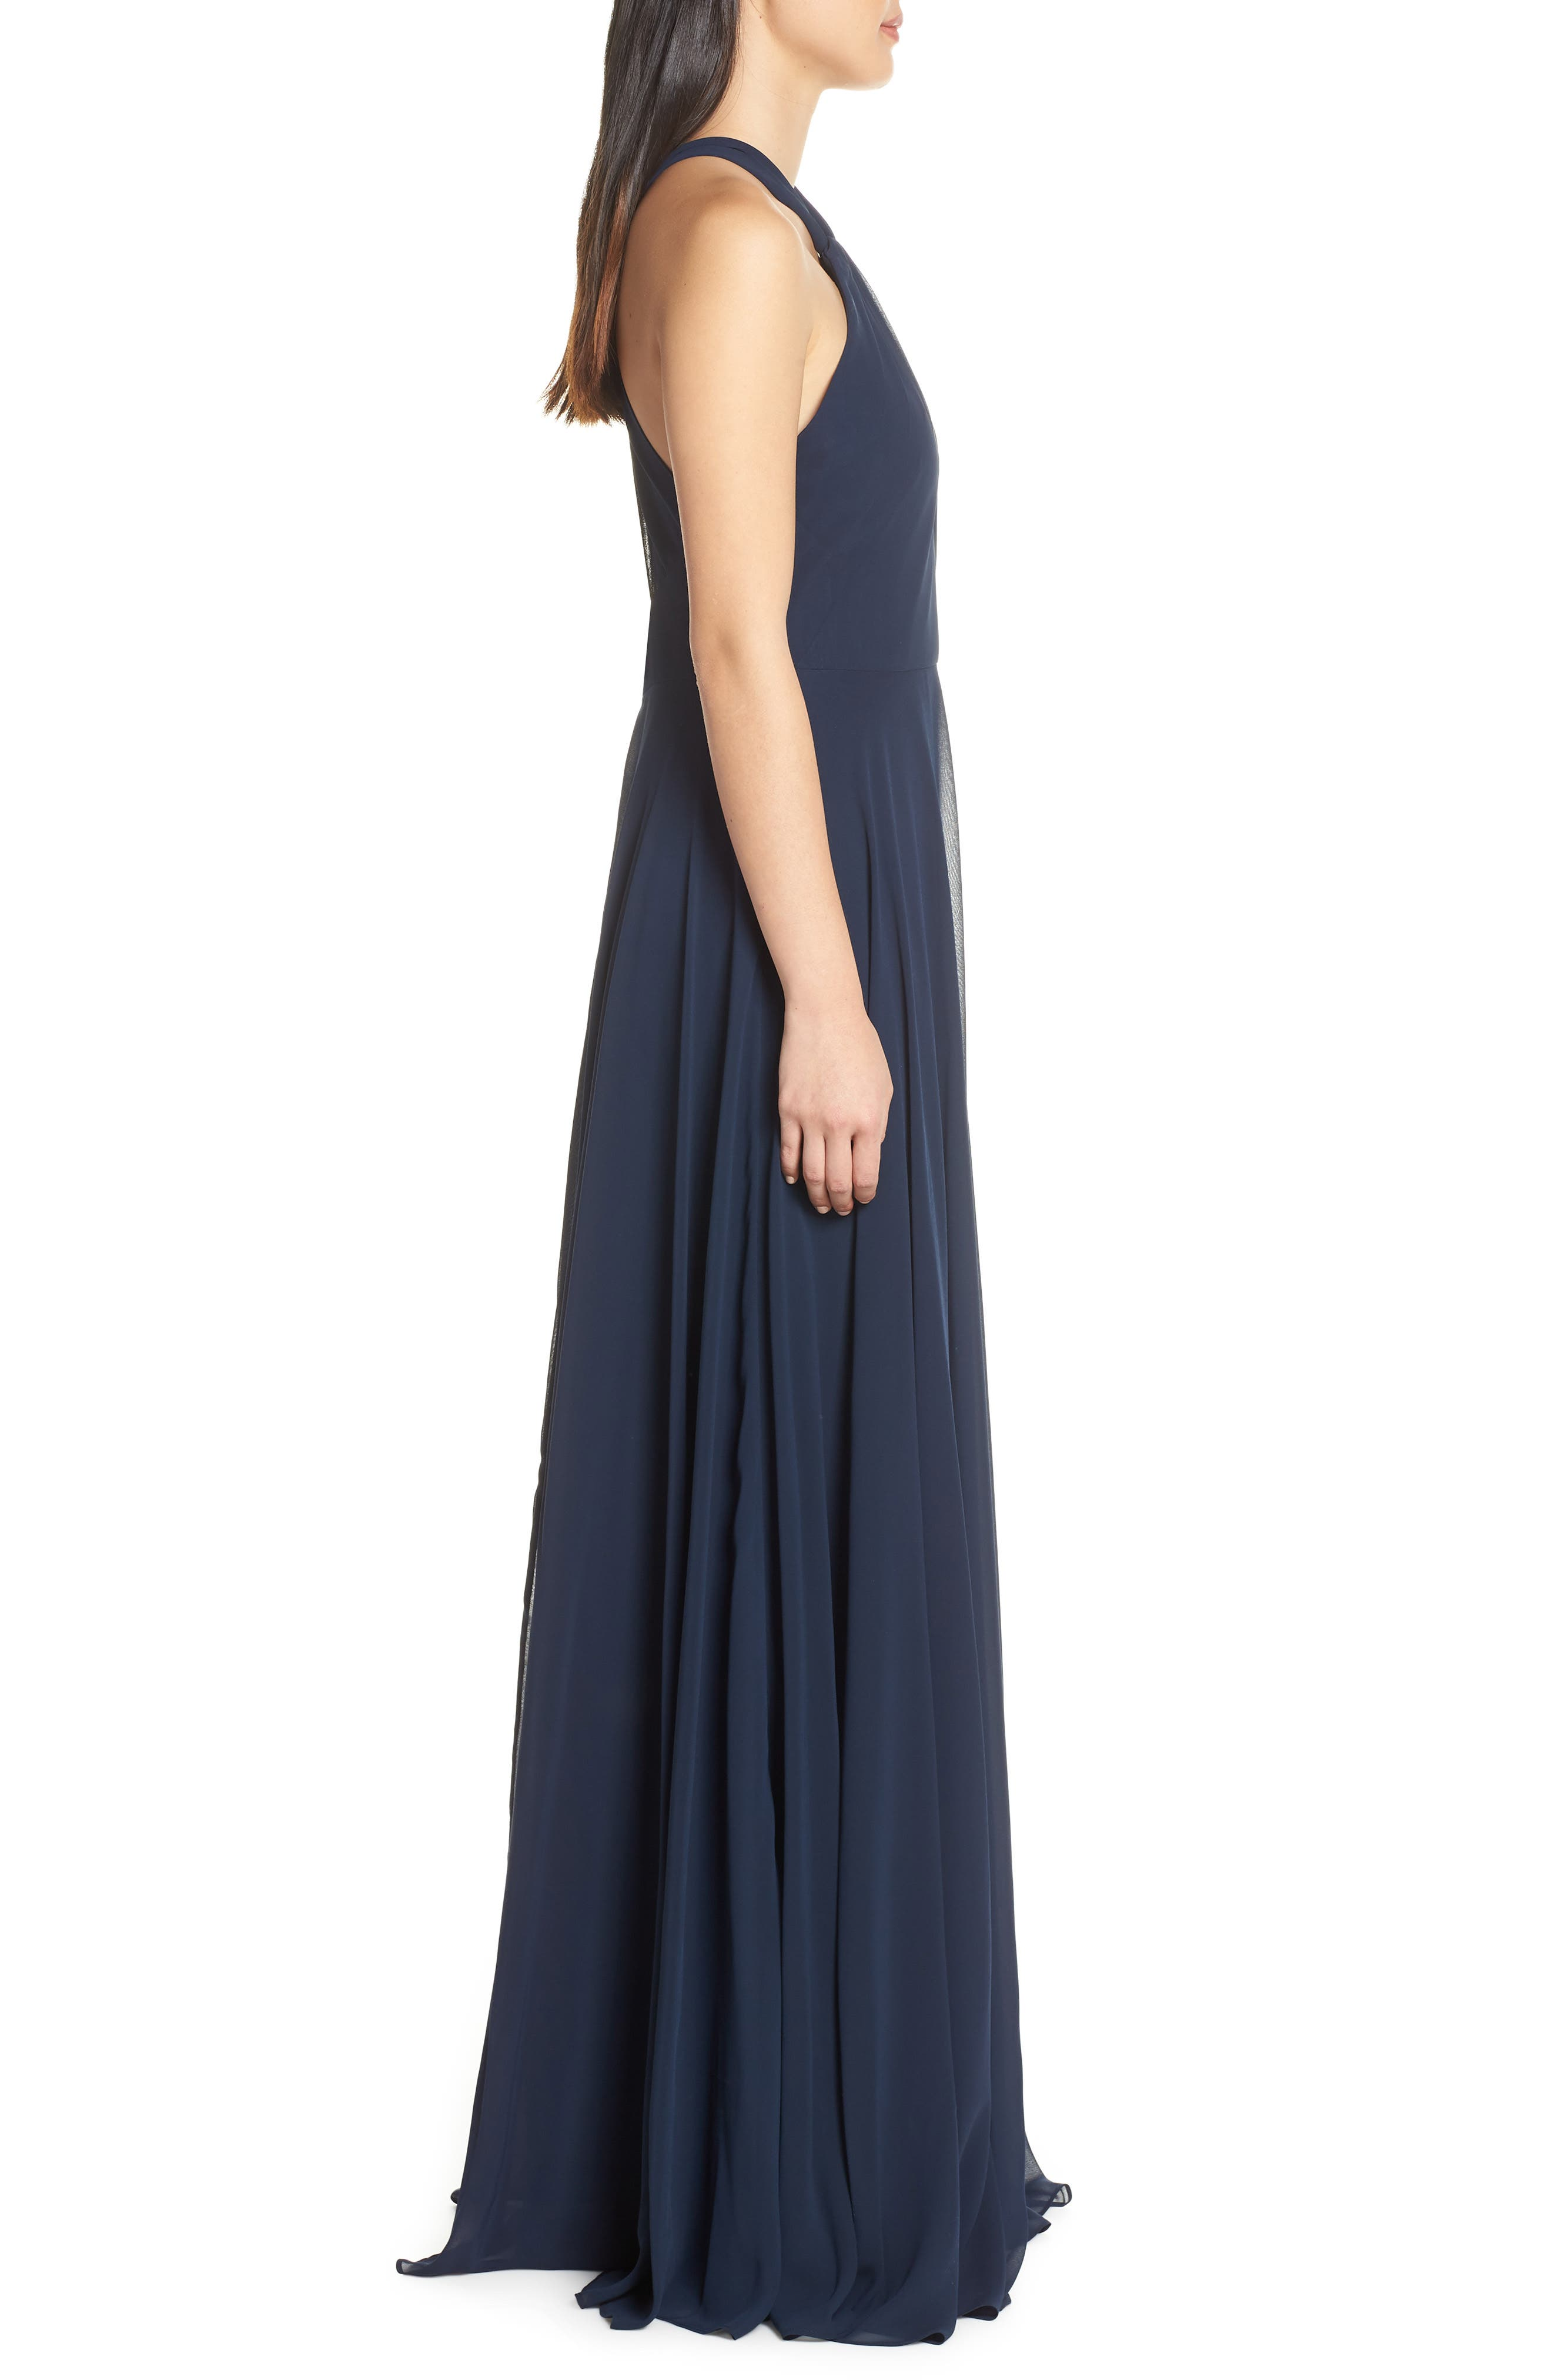 JENNY YOO, Halle Halter Evening Dress, Alternate thumbnail 4, color, NAVY